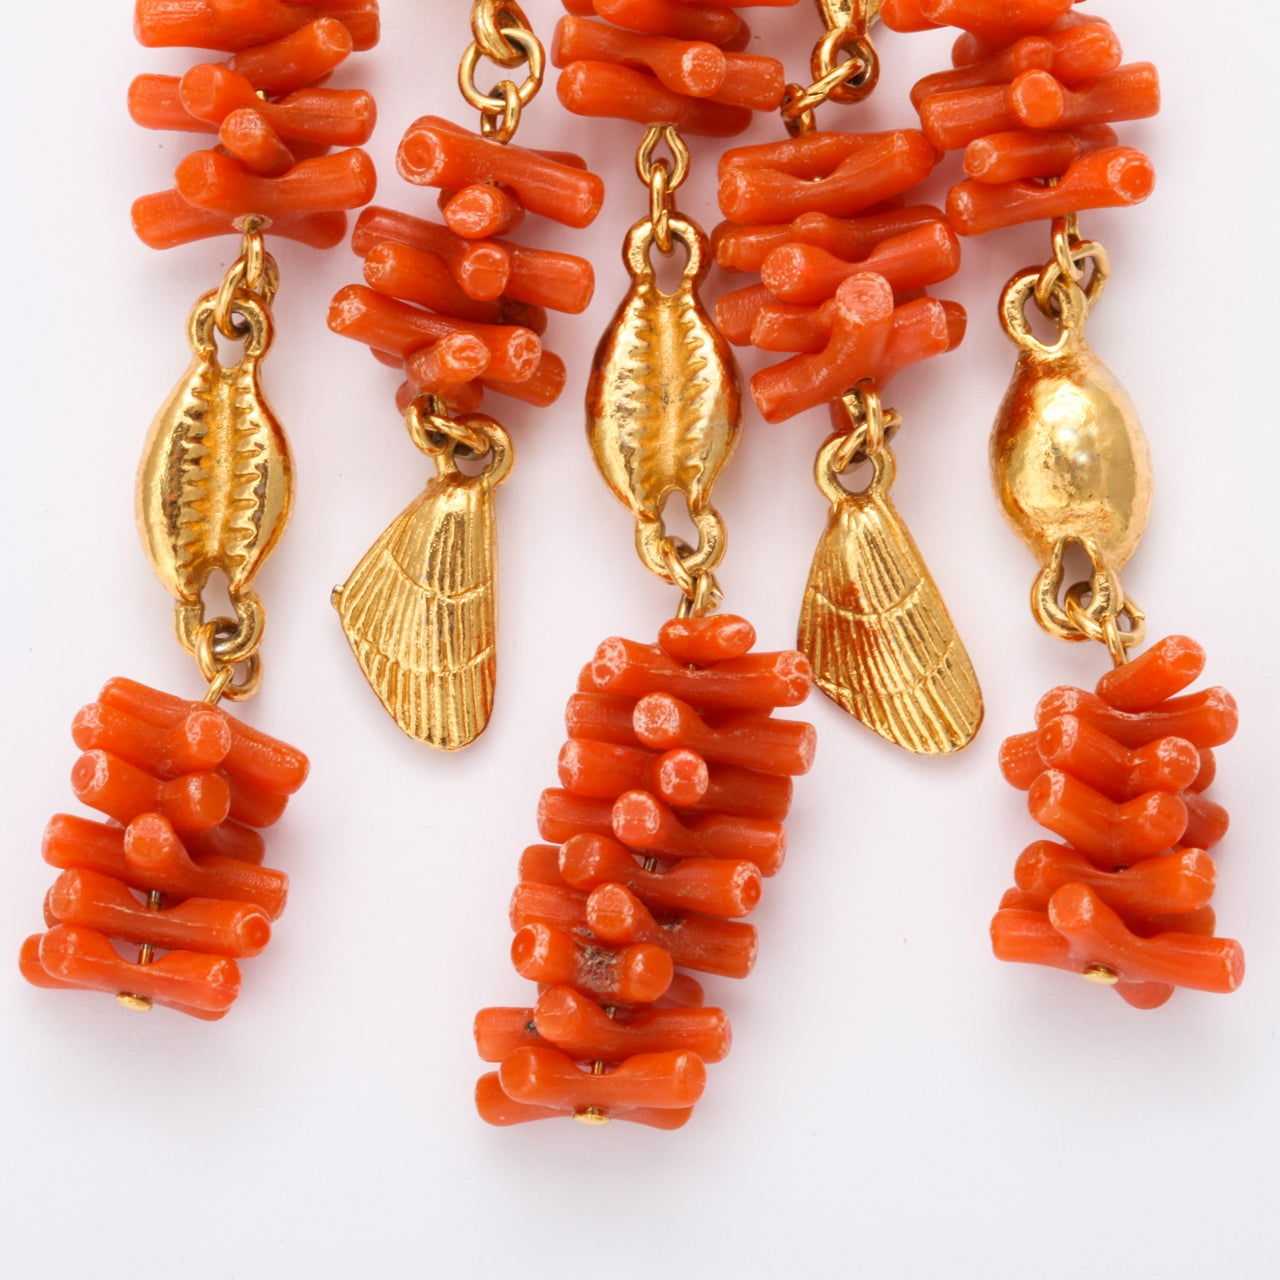 Coral and Shell Pendant Necklace 5